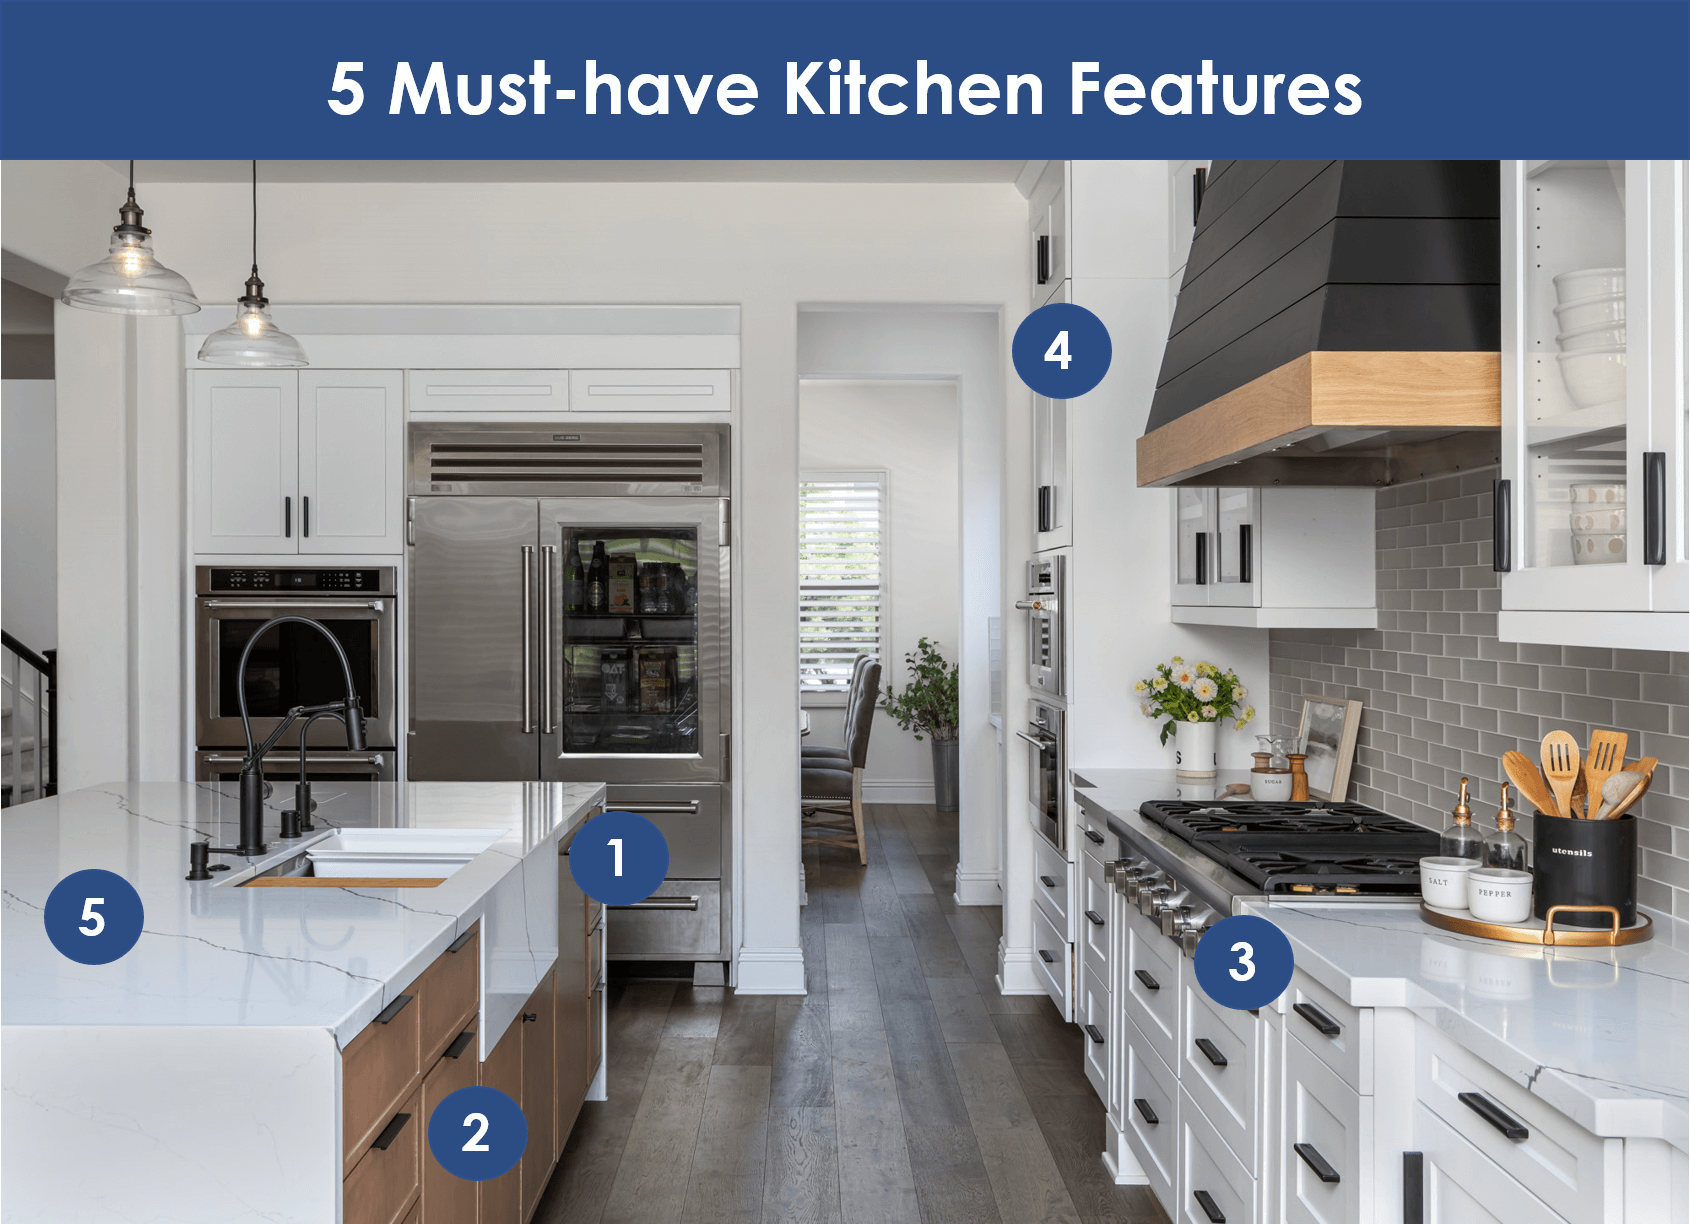 5 Must-have Kitchen Features